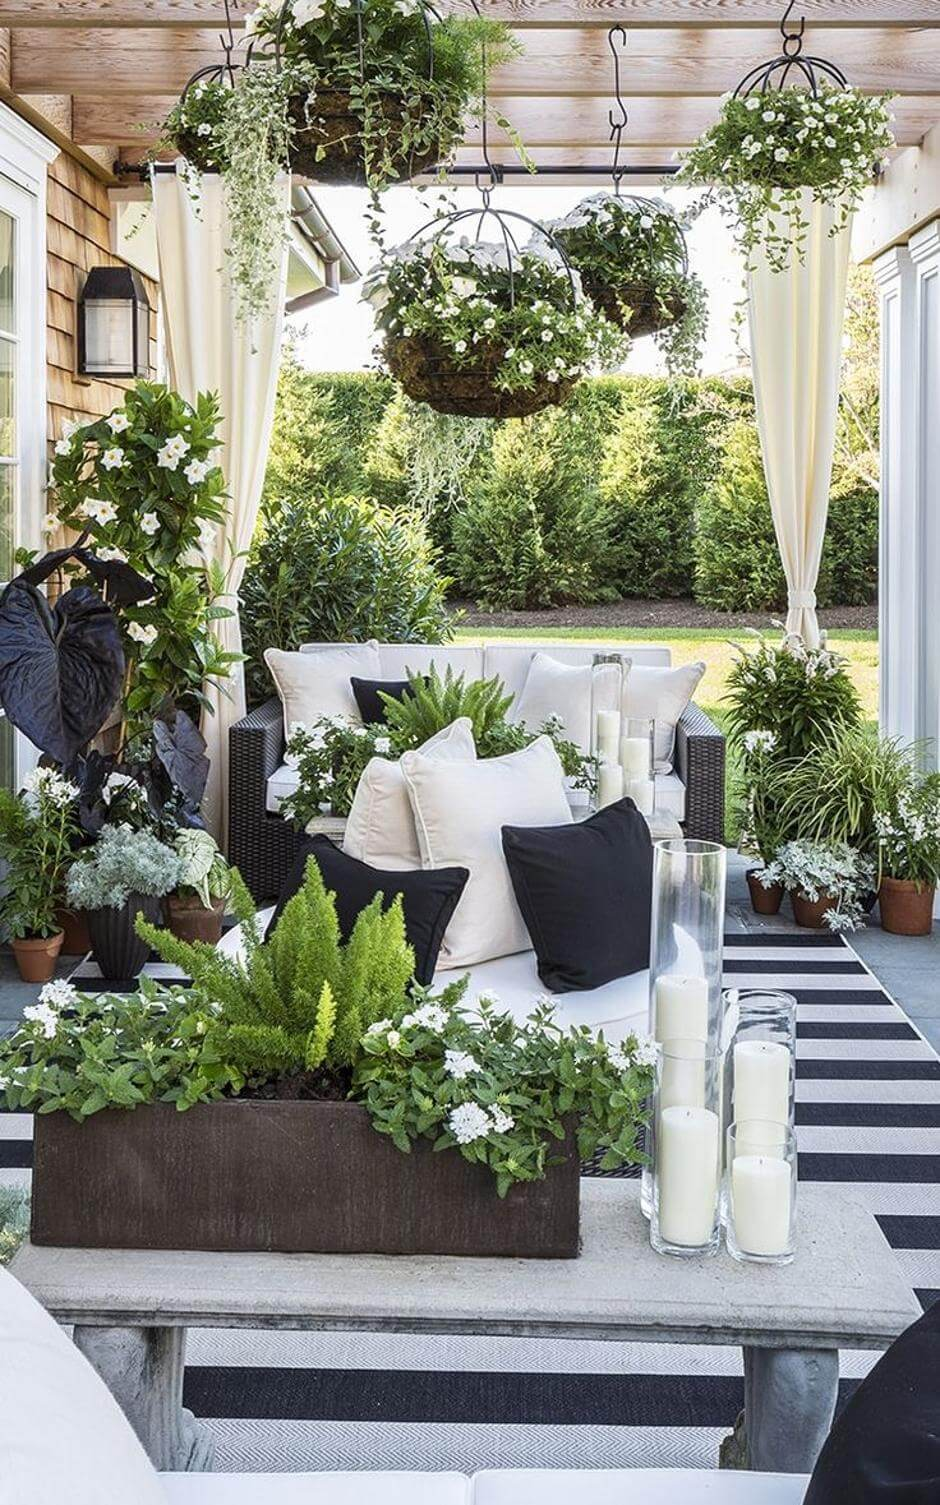 Outdoor Decor: 13 Amazing Curtain Ideas for Porch and ... on Backyard Patio Decorating Ideas id=64366